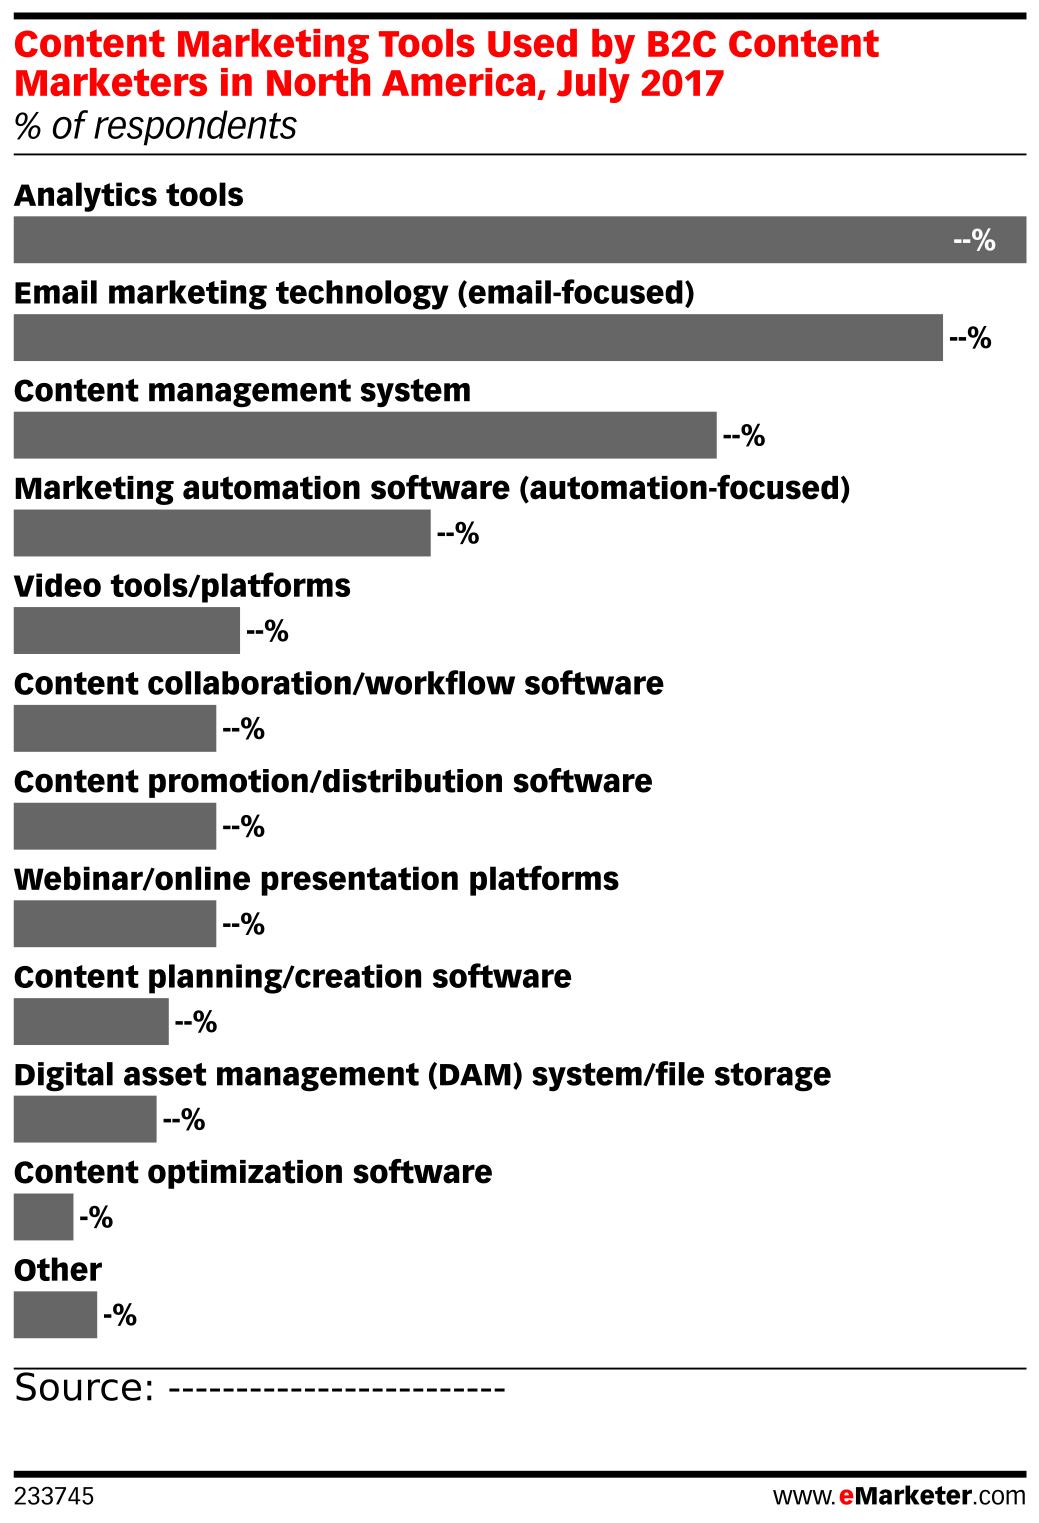 Content Marketing Tools Used by B2C Content Marketers in North America, July 2017 (% of respondents)